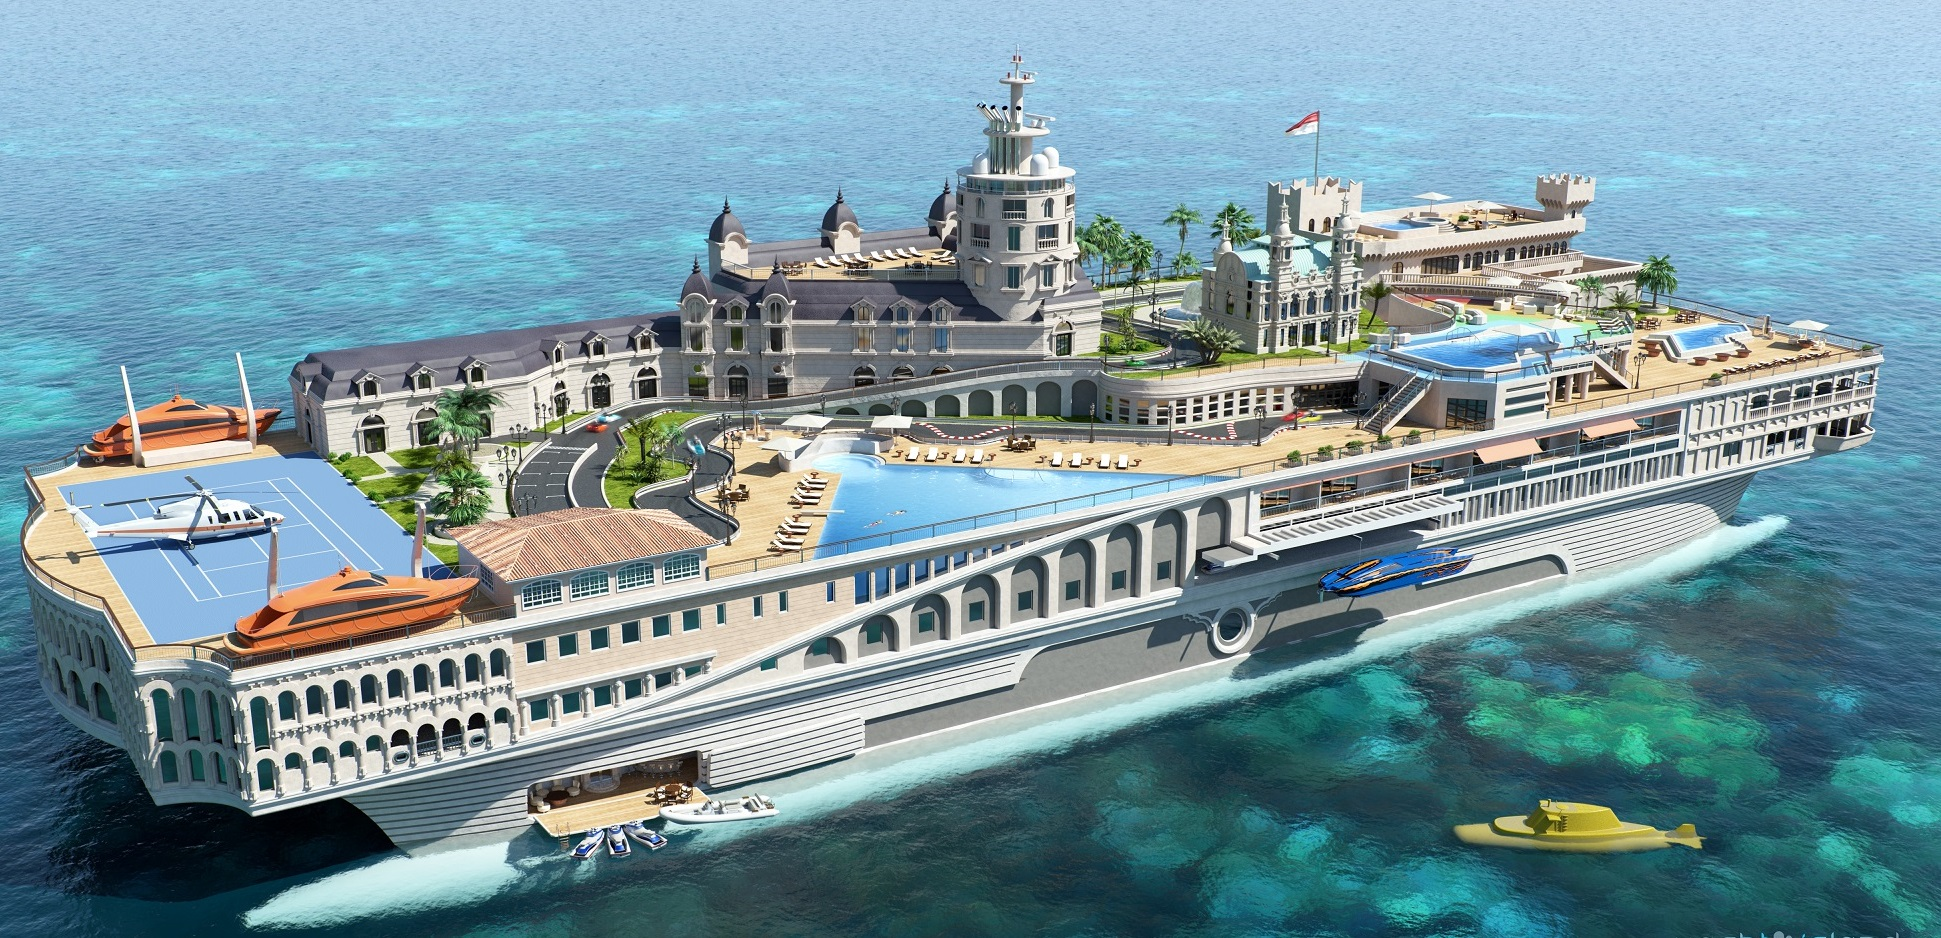 top ten yachts in the world